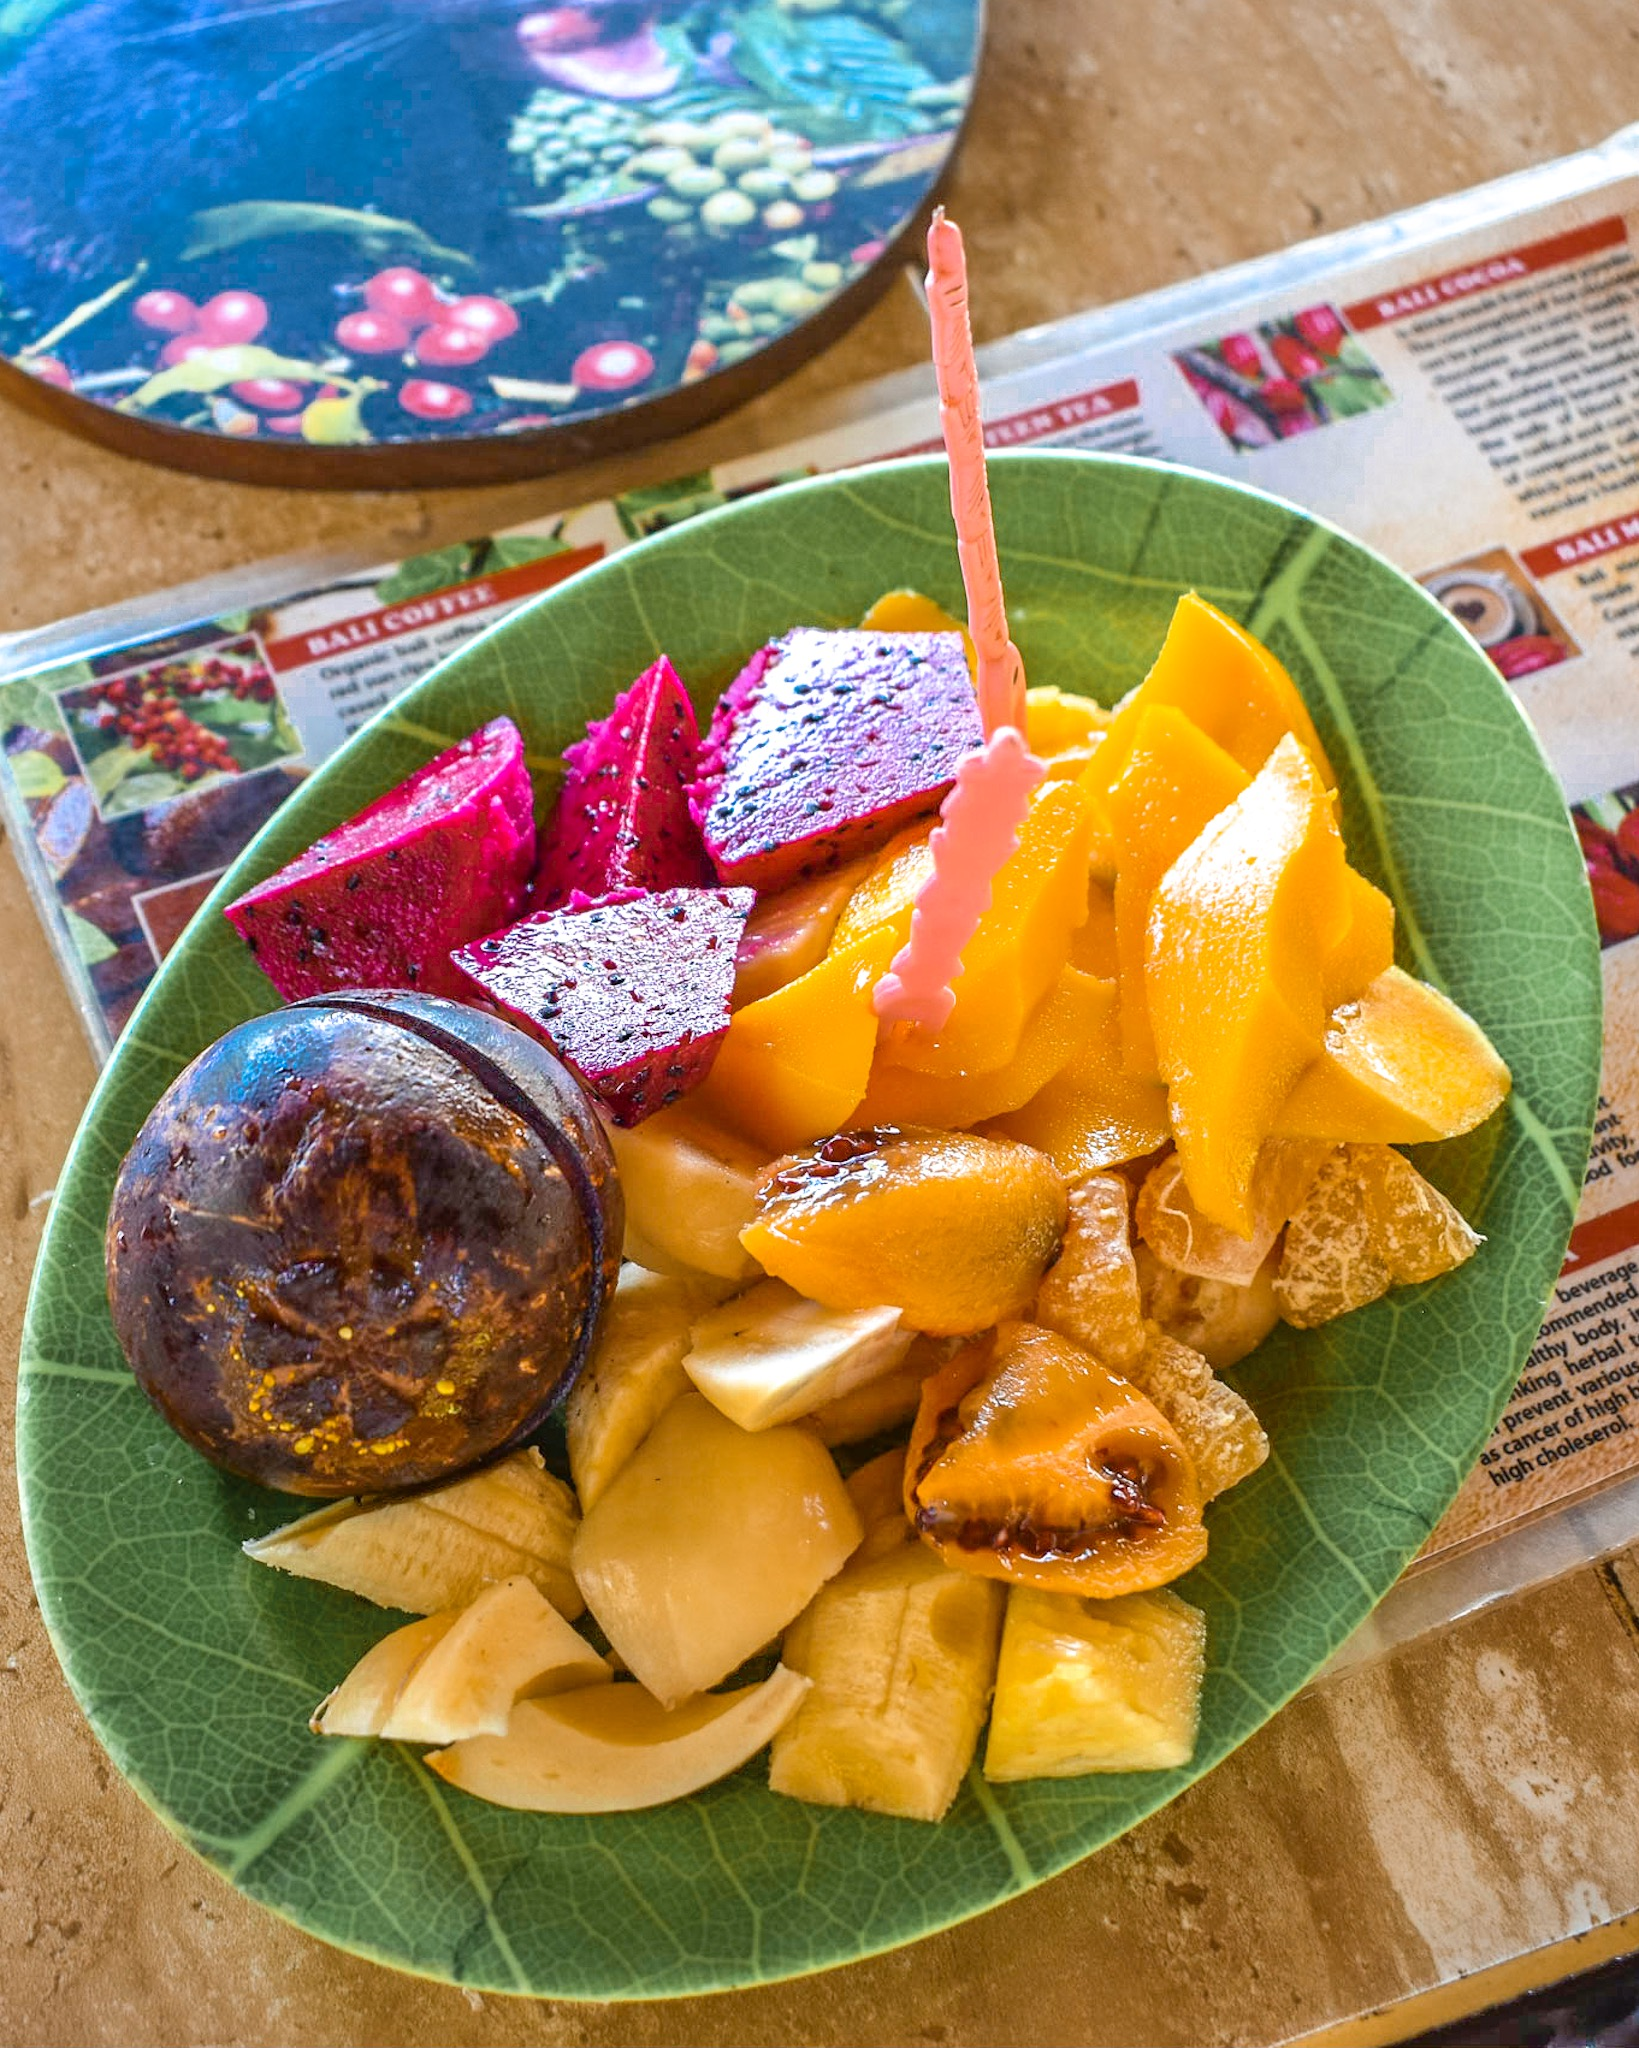 Delicious Fruit Platter at Coffee Plantation in Bali